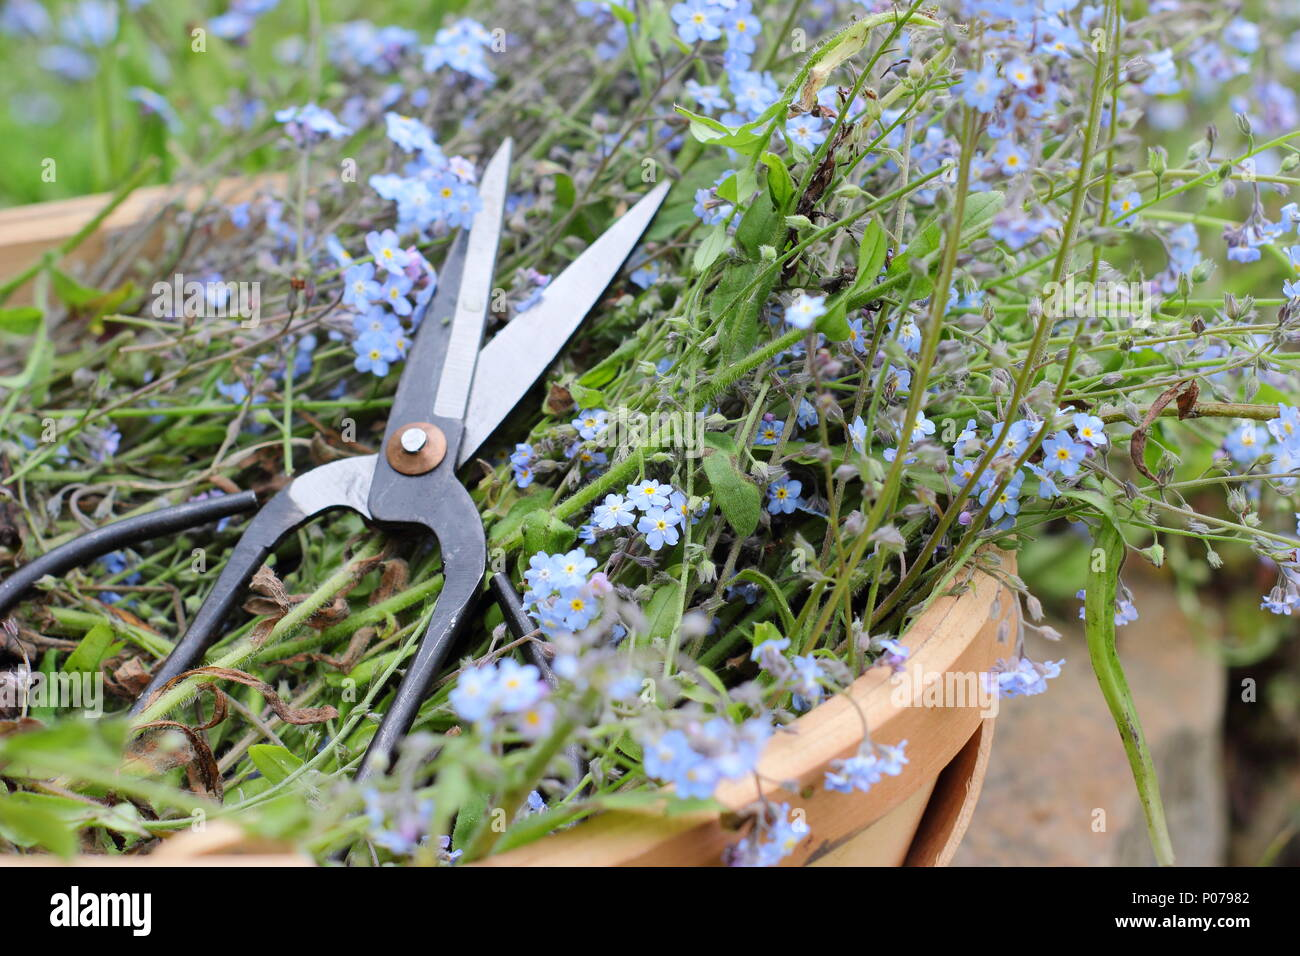 Myosotis. Clearing forget me not flowers (Myosotis), from the border of an English garden into a trug in late spring, UK - Stock Image